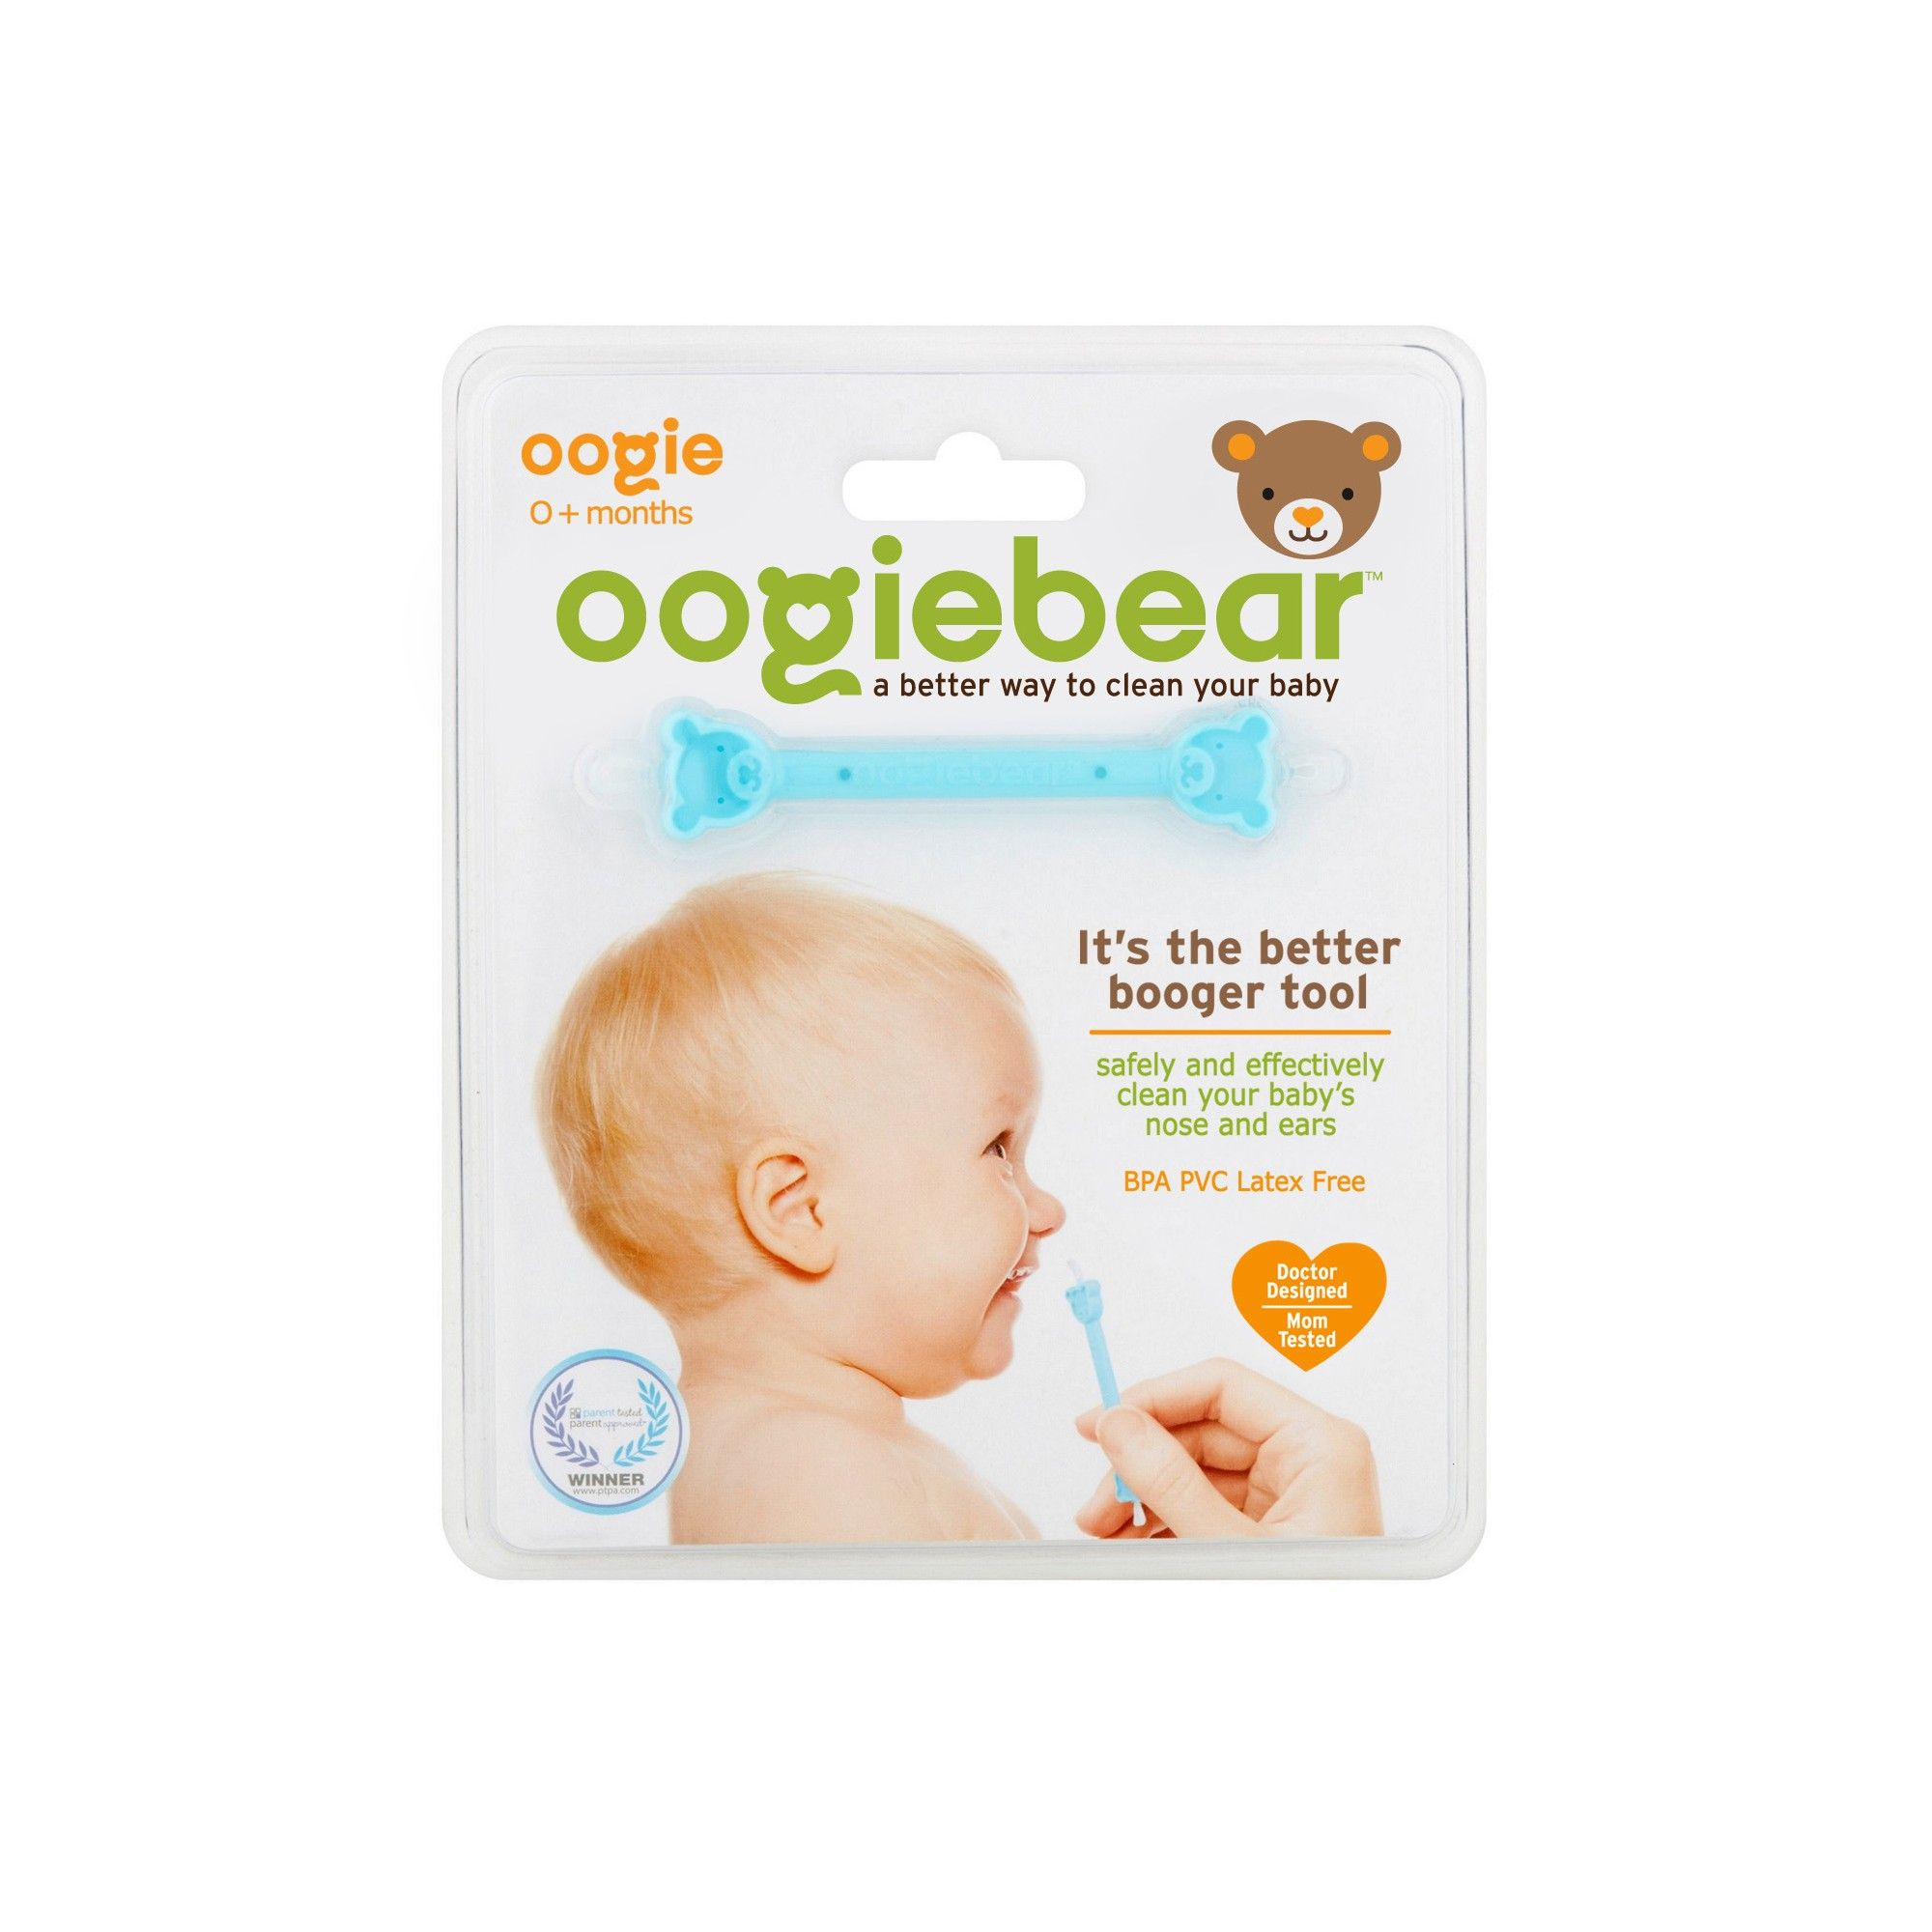 Oogiebear The Better Booger Tool Nose Ear Cleaner Blue Nose Cleaner Infant Ear Ear Cleaning